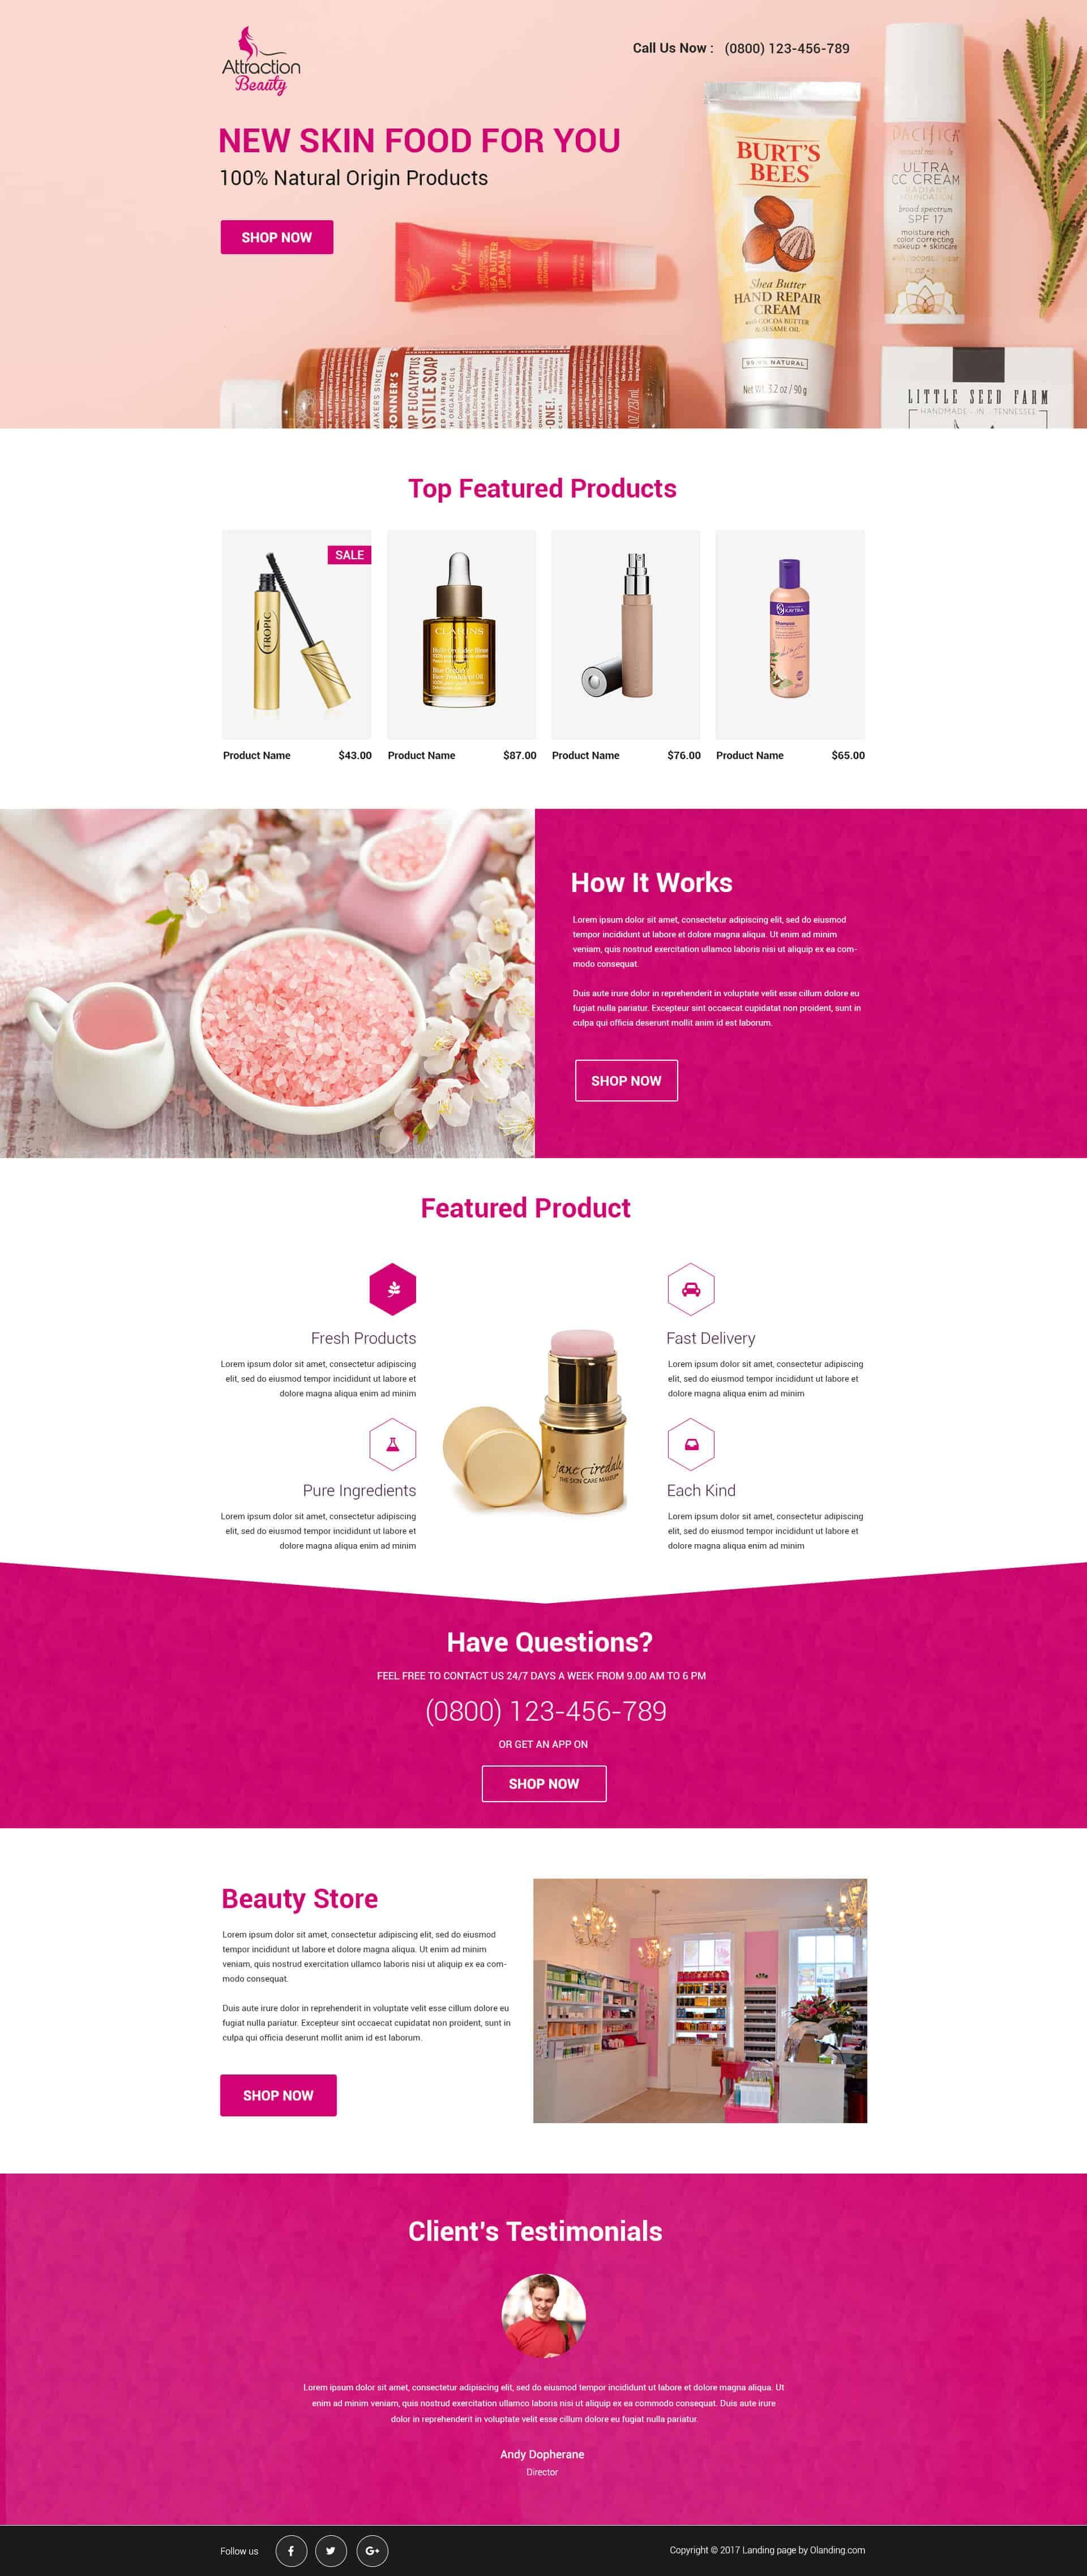 Beauty Products Landing Page Template Landing Page Design Landing Page Design Templates Product Landing Page Design